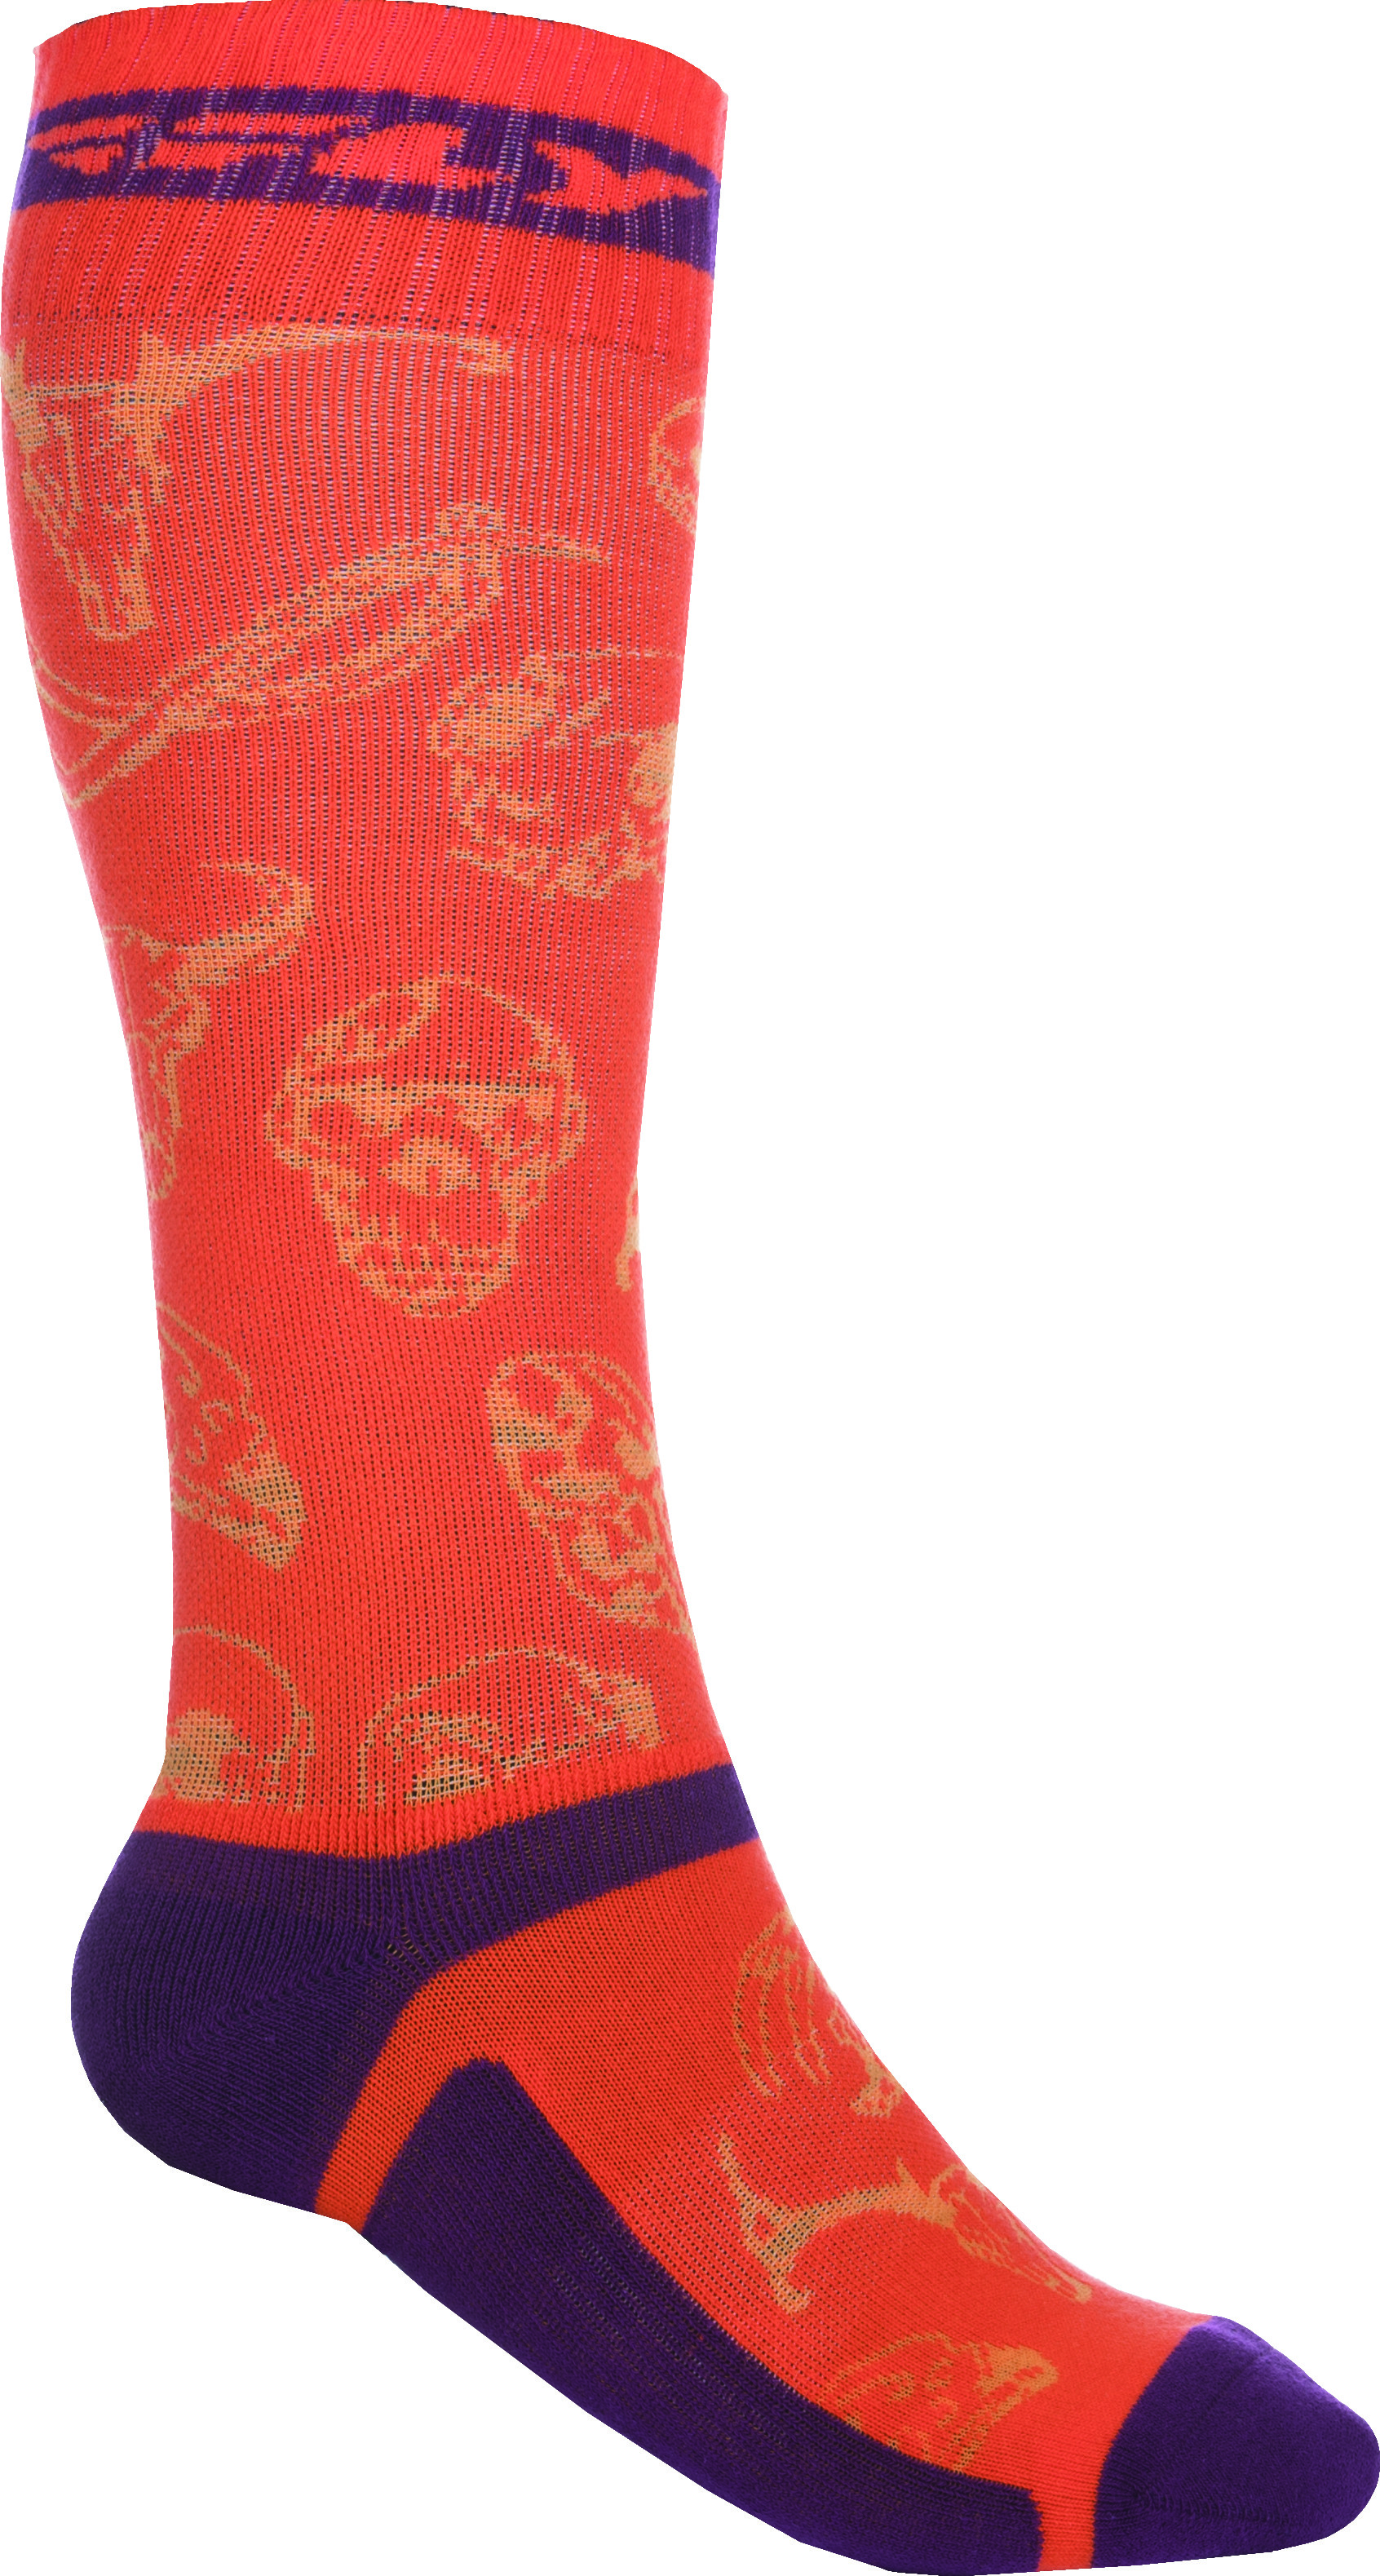 Mx Pro Sock Thin Orange/Purple L/X